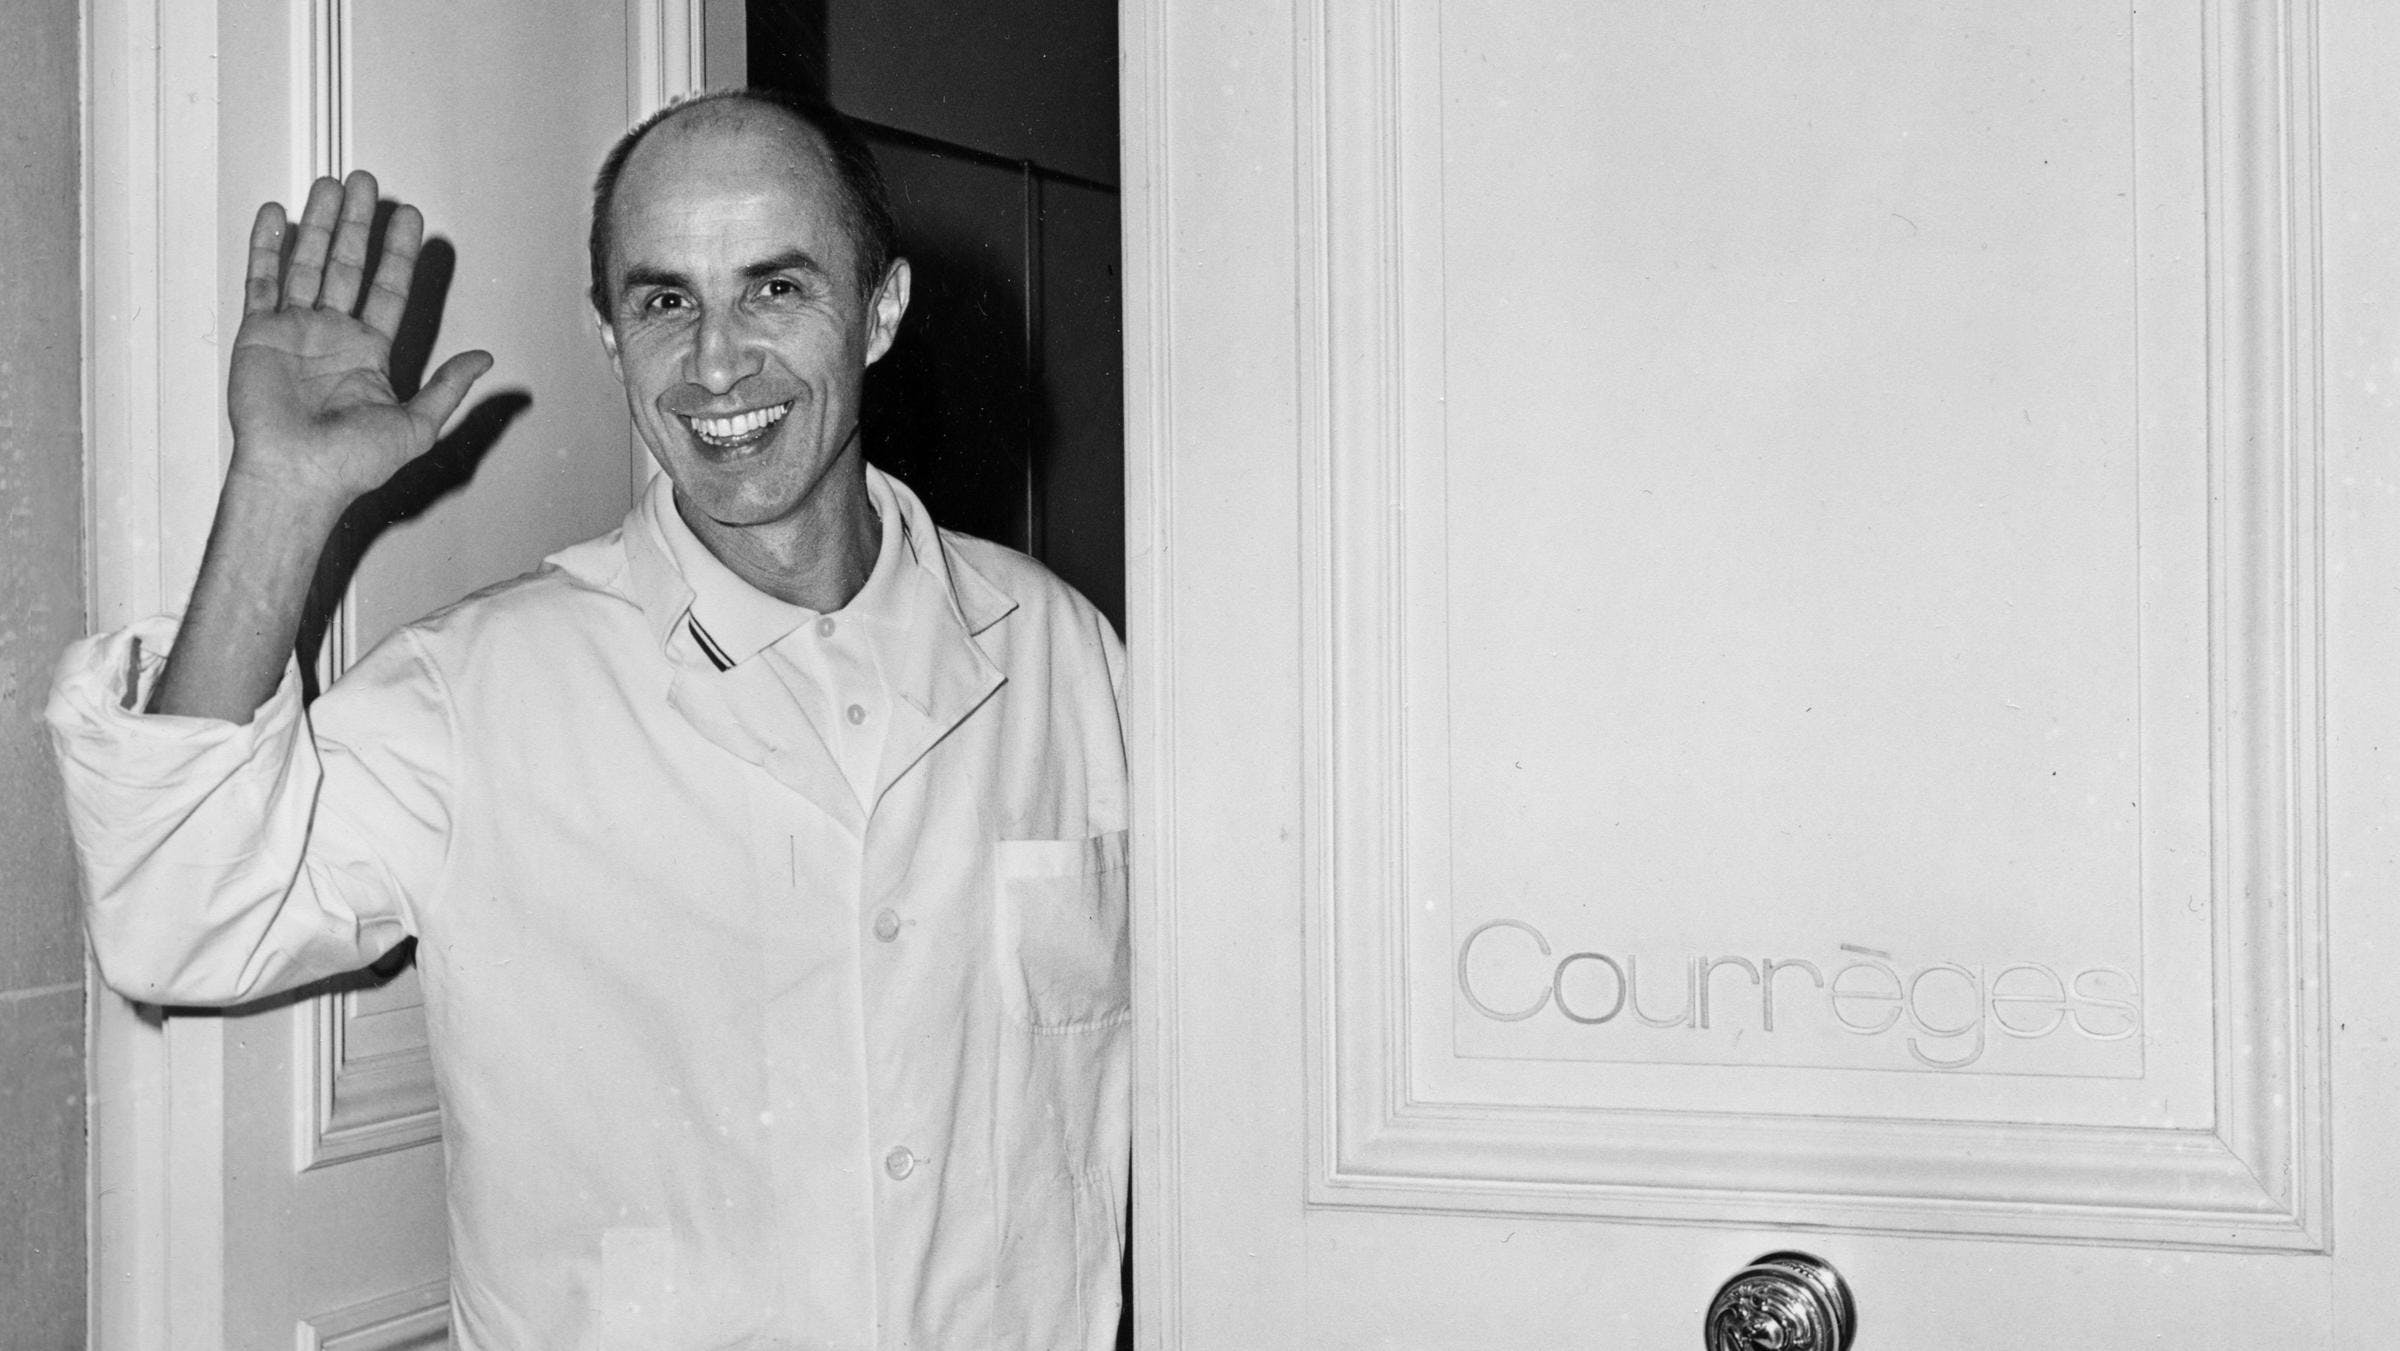 BEFORE COURREGES: ARCHITECT, FRENCH AIR FORCE PILOT, AND DEPUTY OF BALENCIAGA